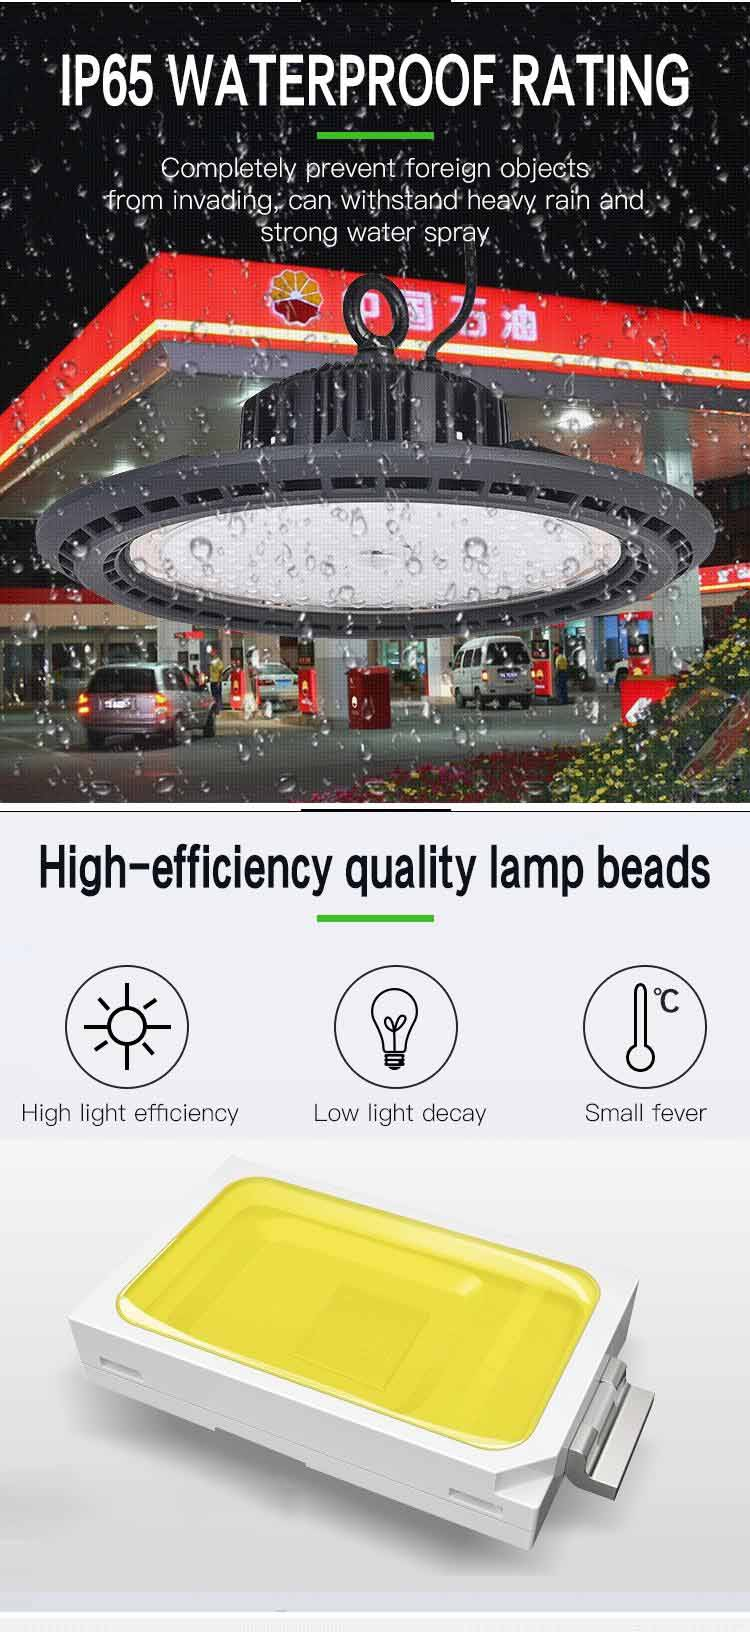 IP65 waterproof rating for 200W Anti-Glare Industrial High Bay Lights